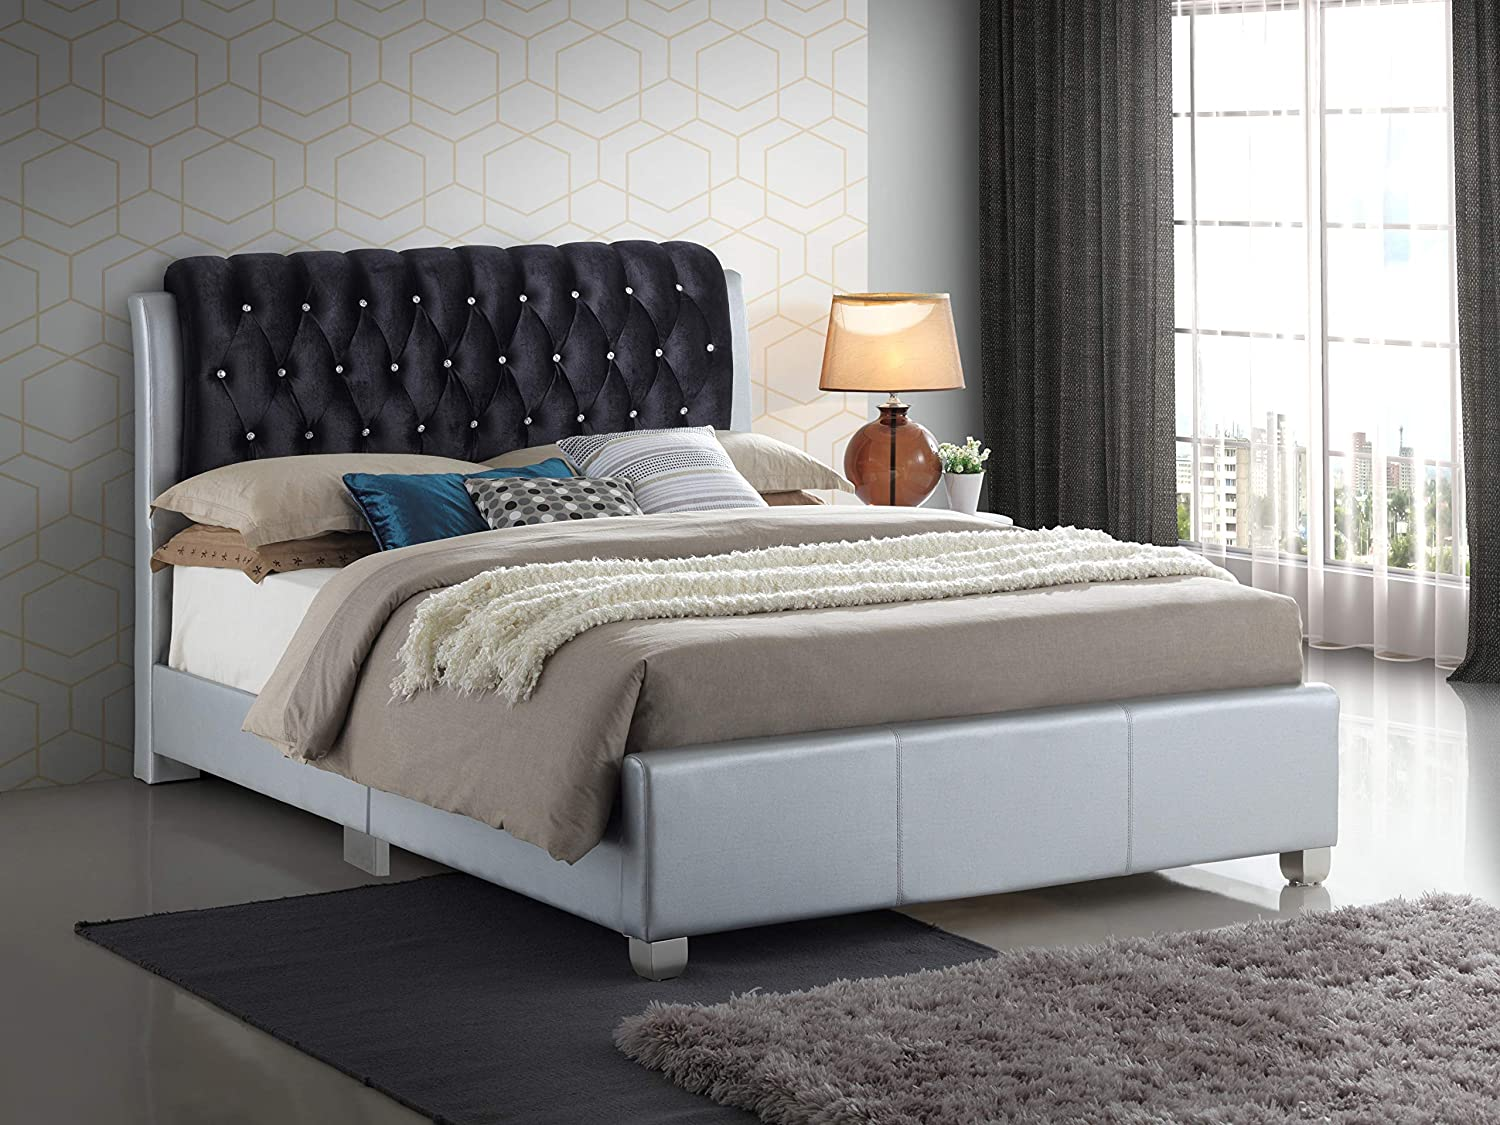 Amazon.com: Glory Furniture Marilla G1503C-QB-UP Queen, Silver Bed Room Furniture 48